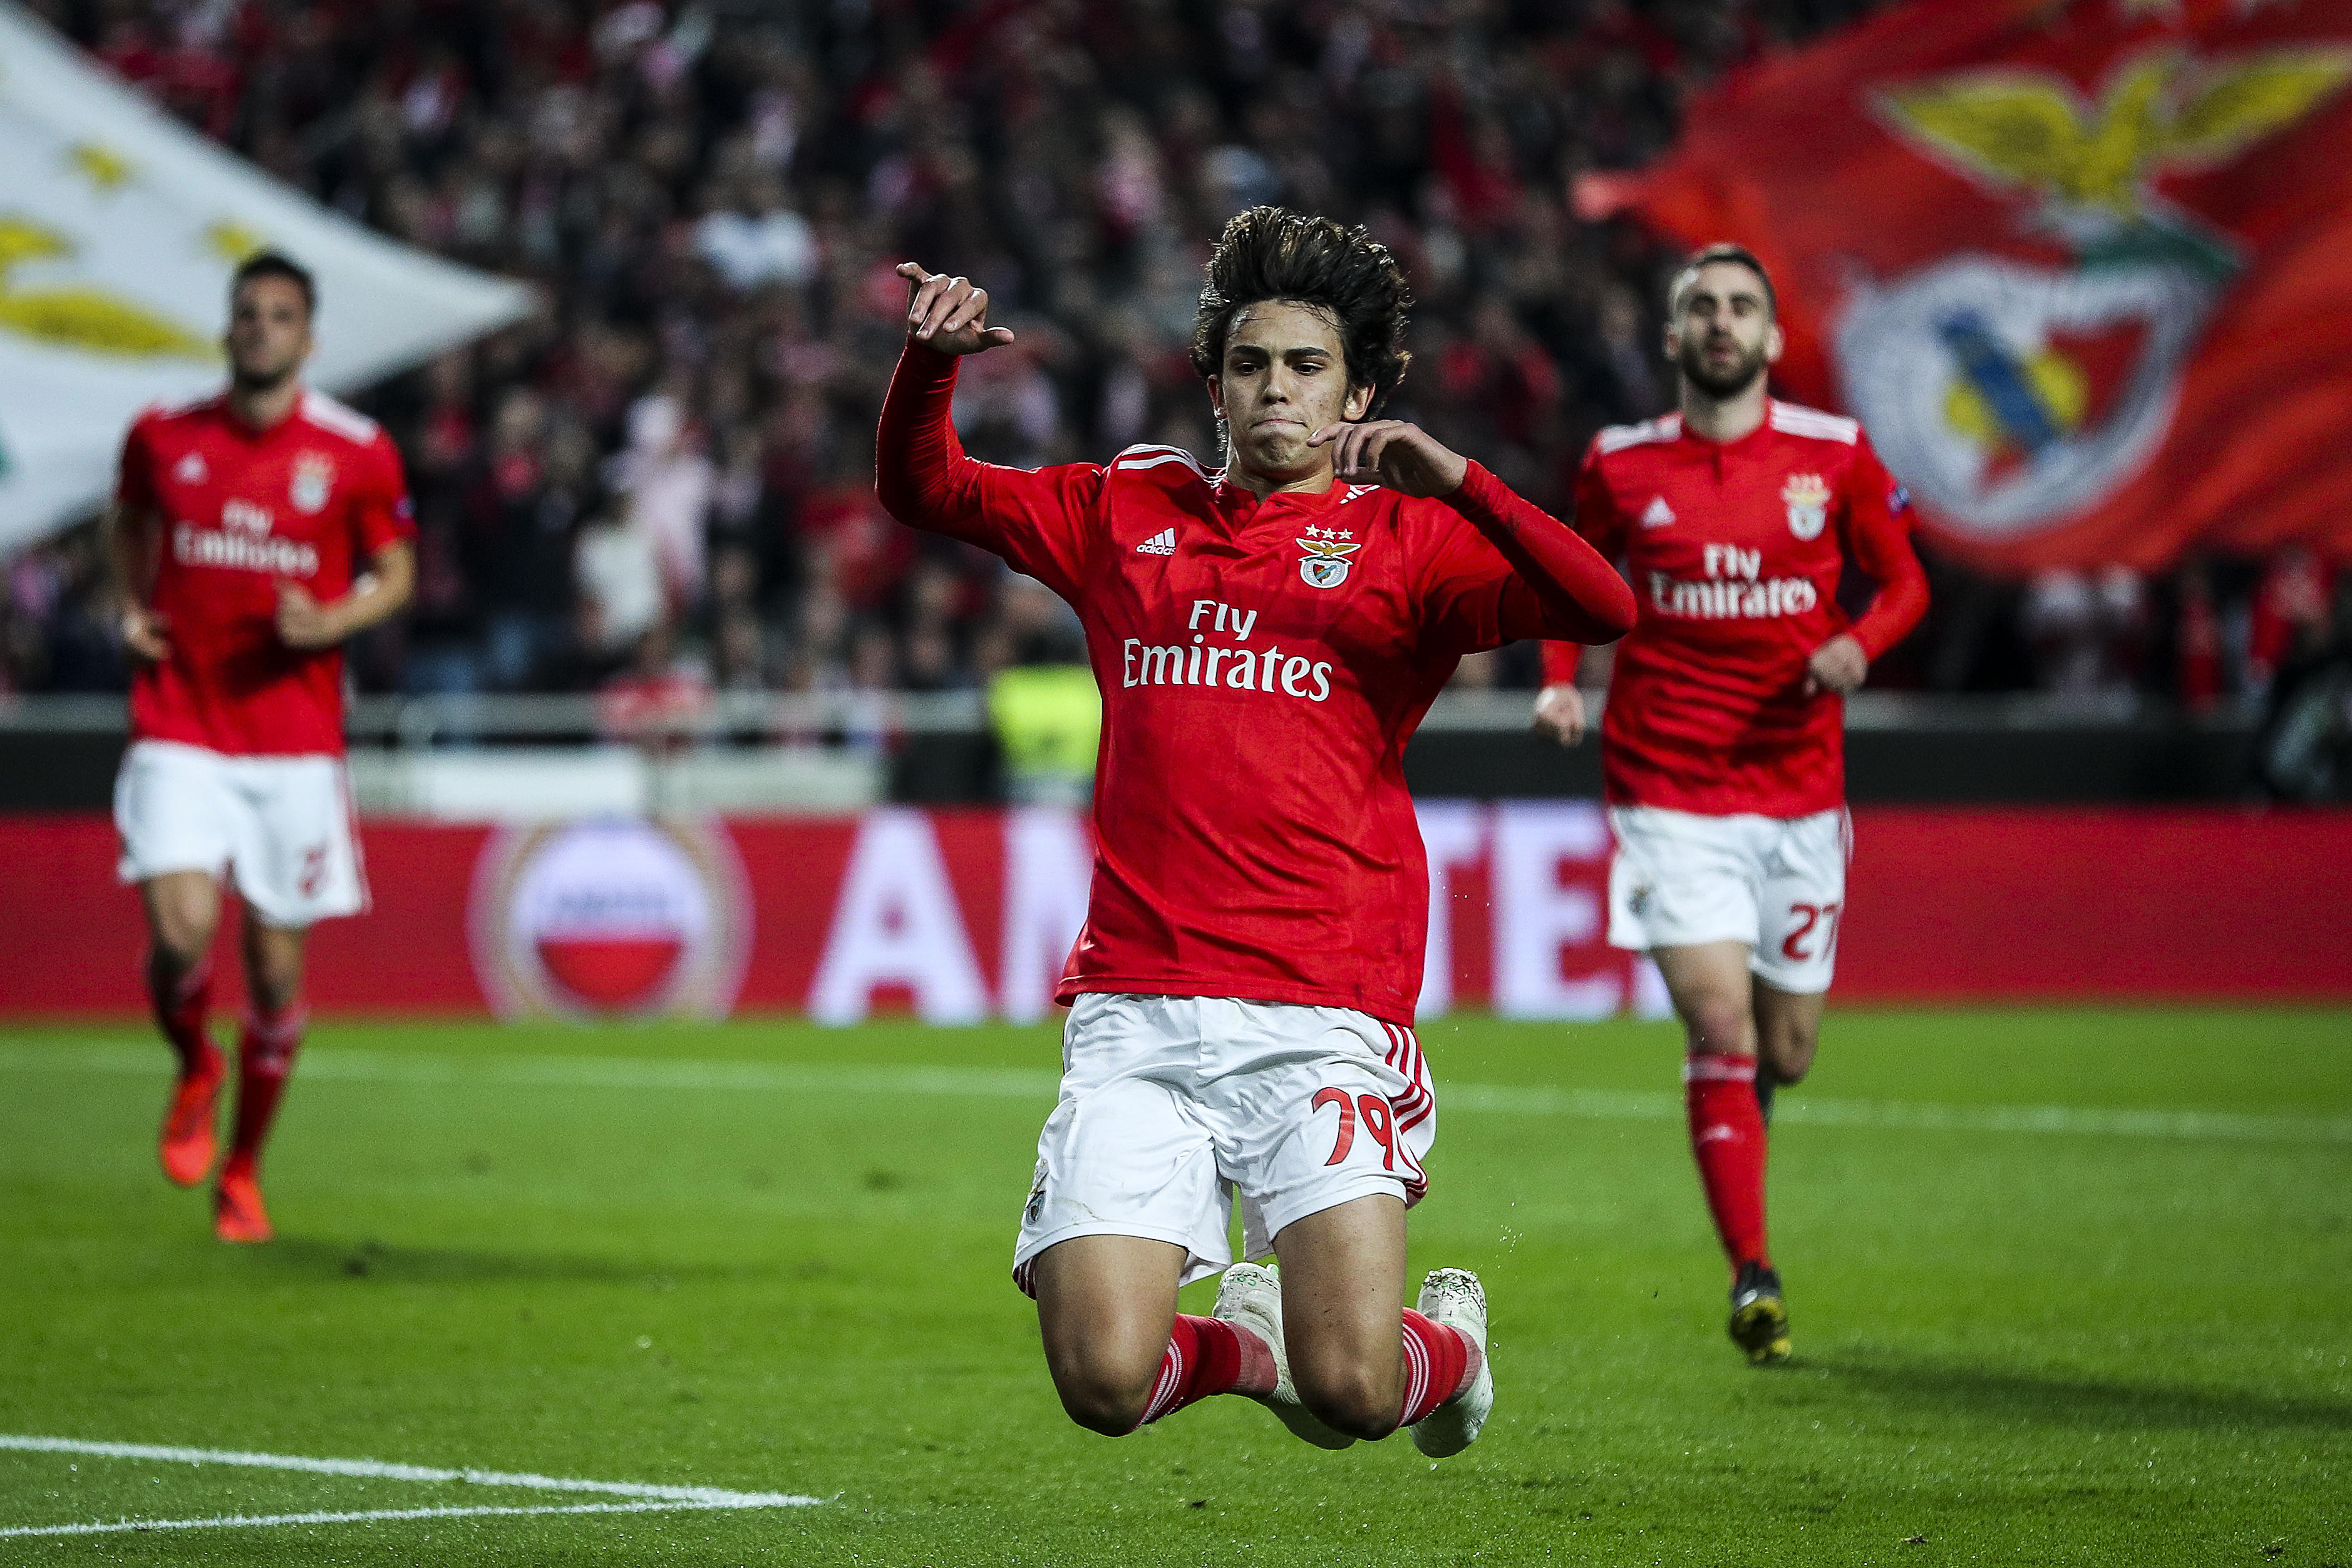 Juve, guarda Joao Felix: tripletta e assist